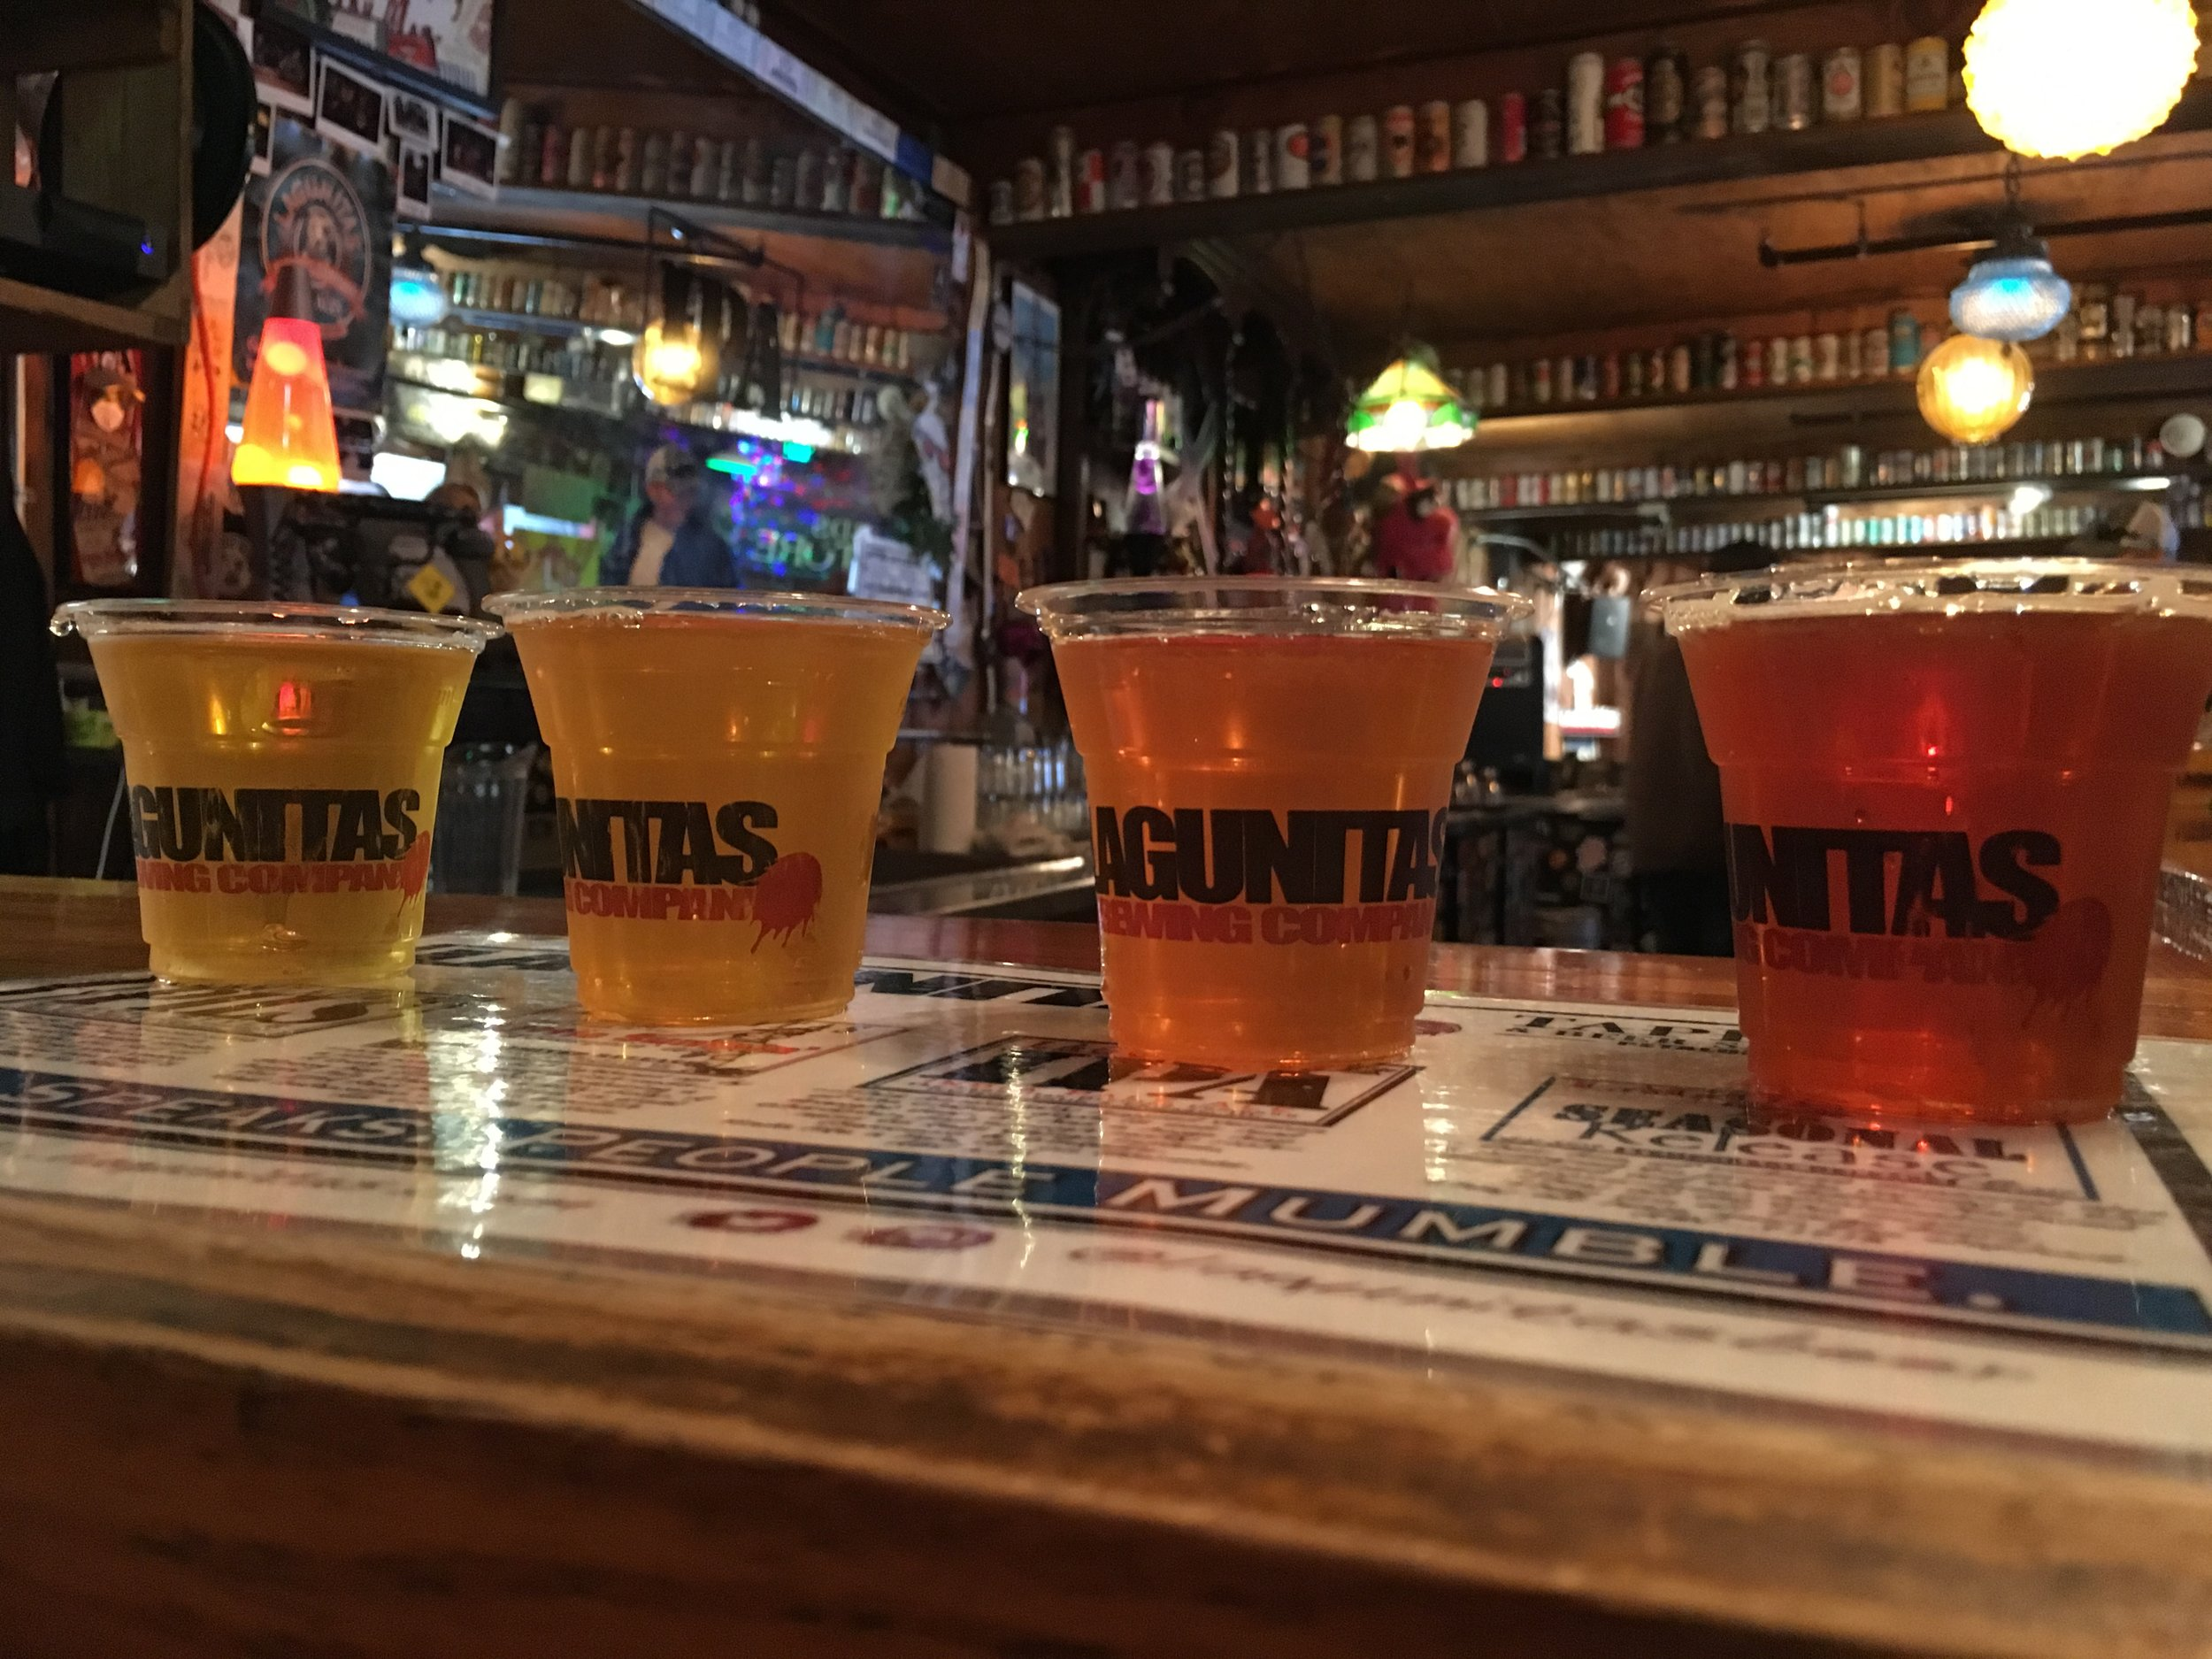 Review of Lagunitas Brewing Company tour in Petaluma, California